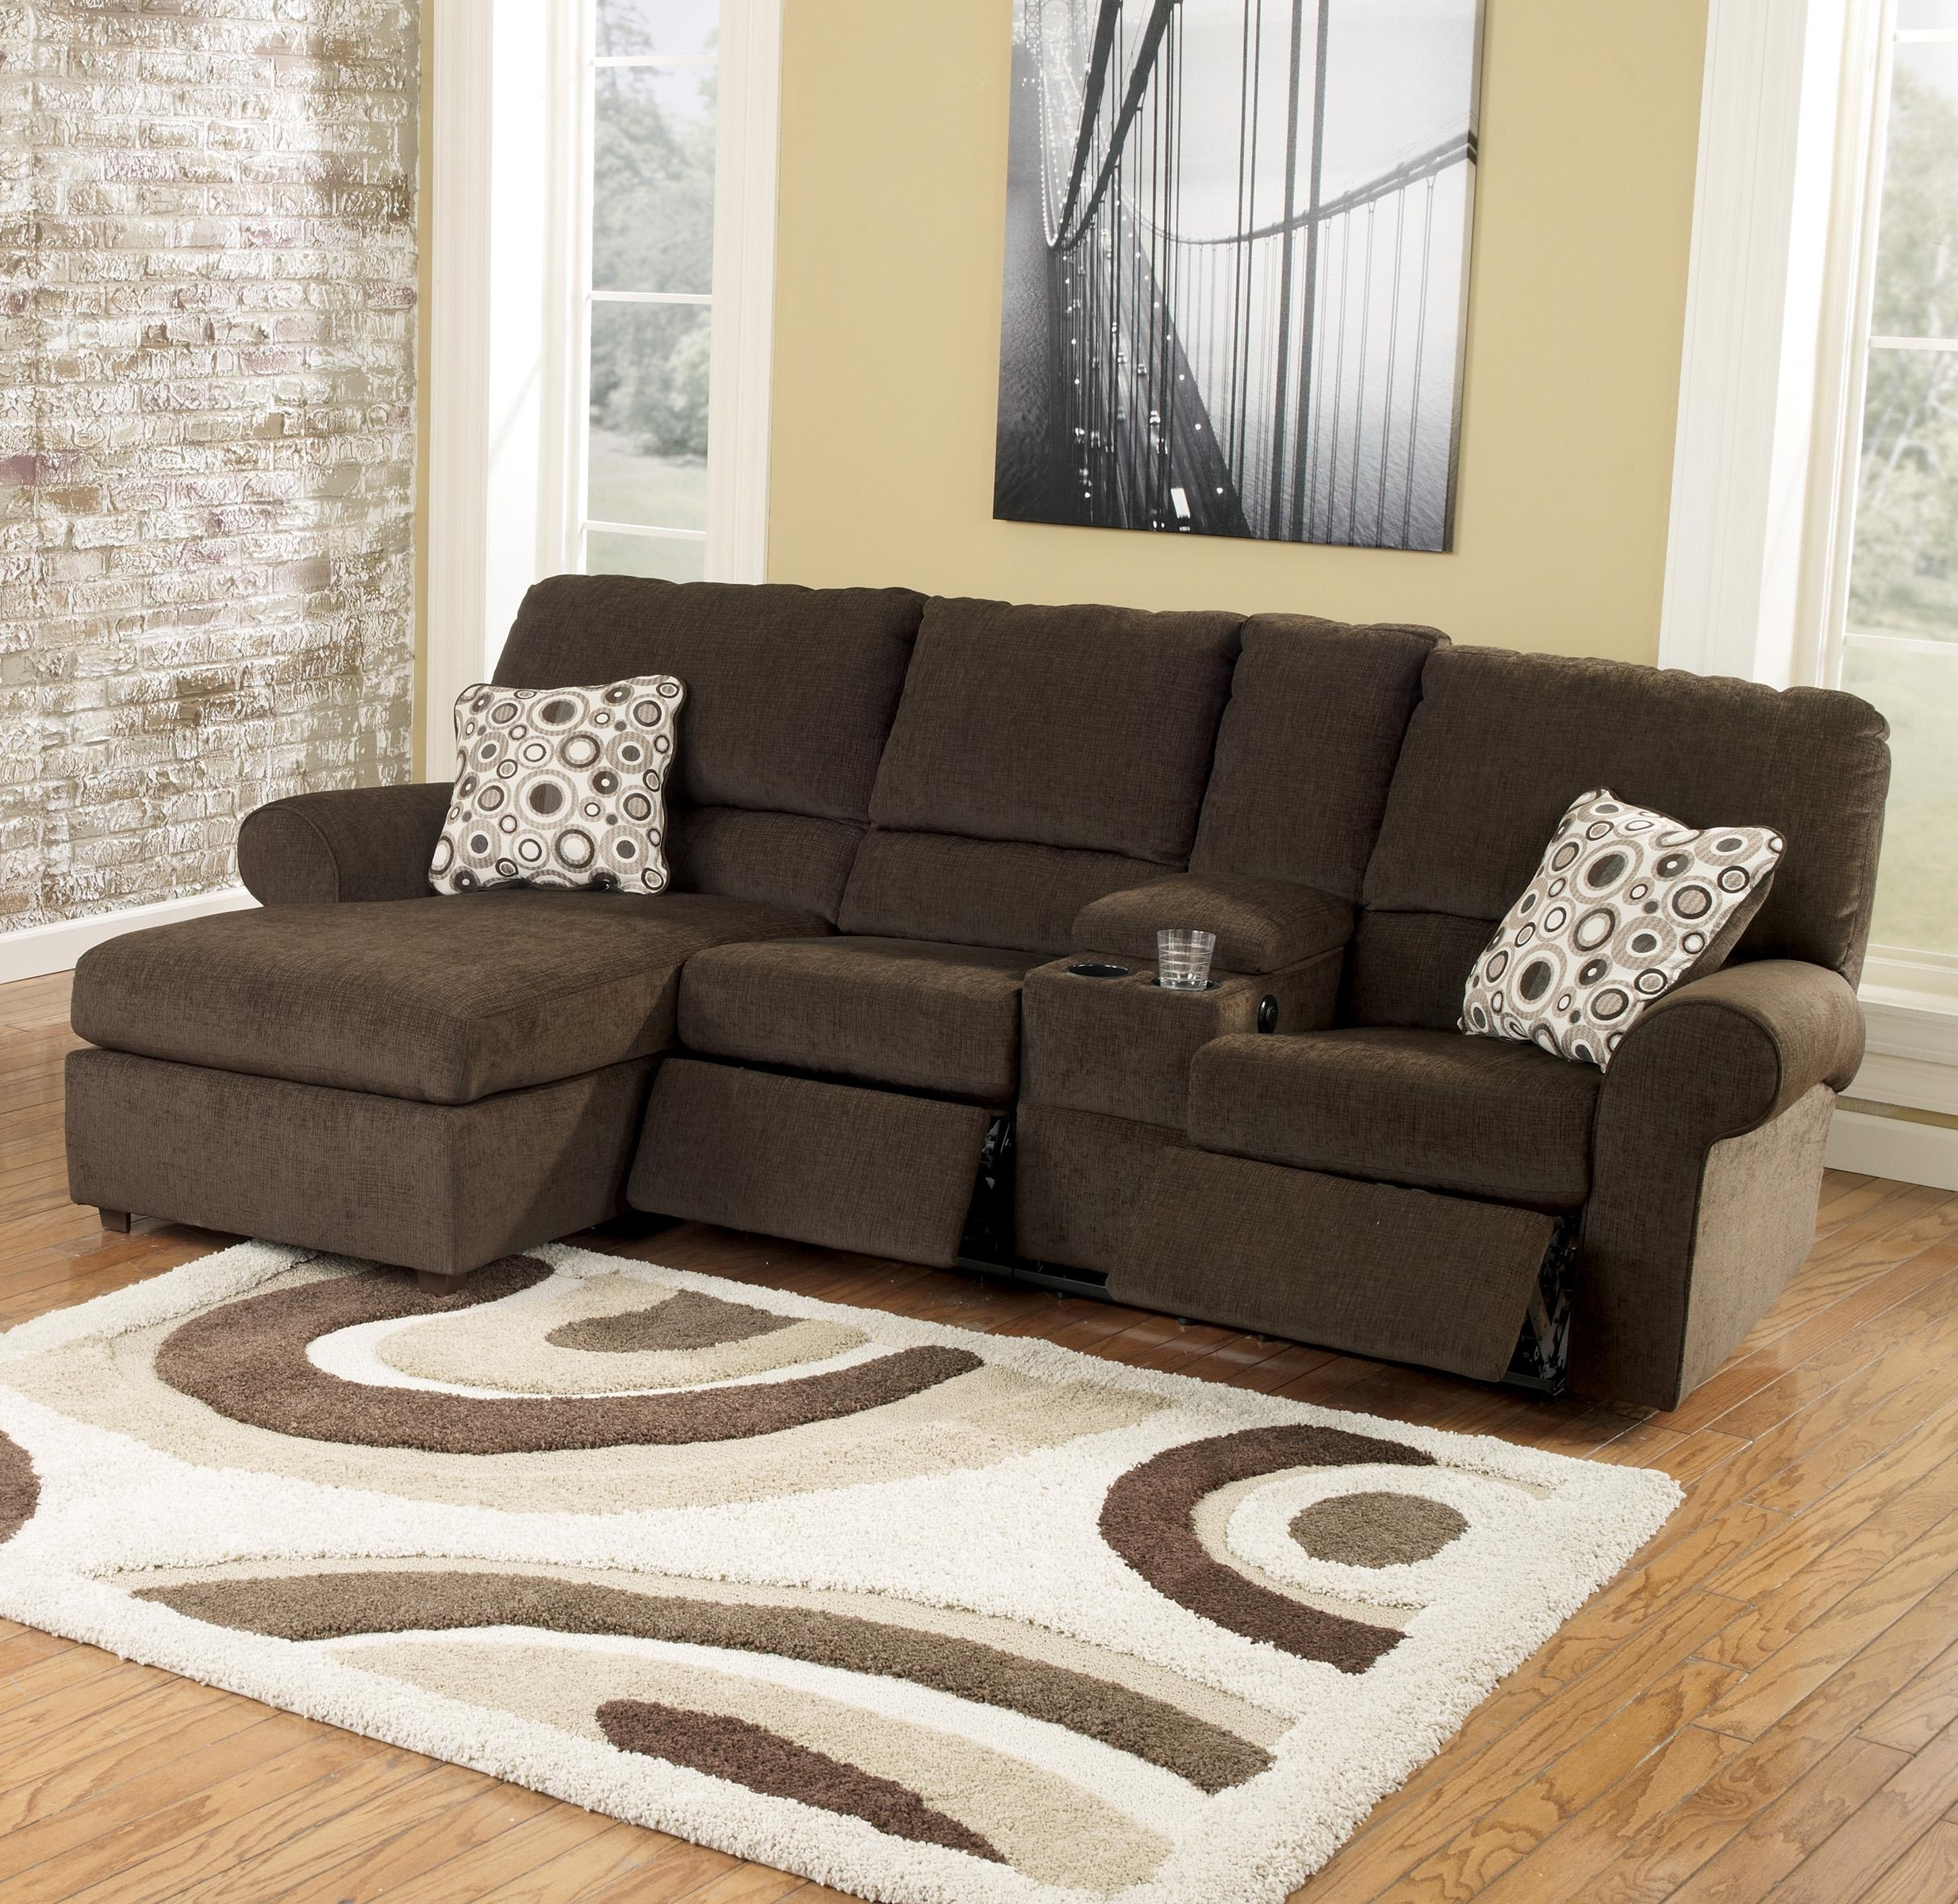 Astonishing Sectional Sofas With Chaise And Recliner 31 About Intended For Trendy Apartment Size Sectionals With Chaise (View 15 of 15)